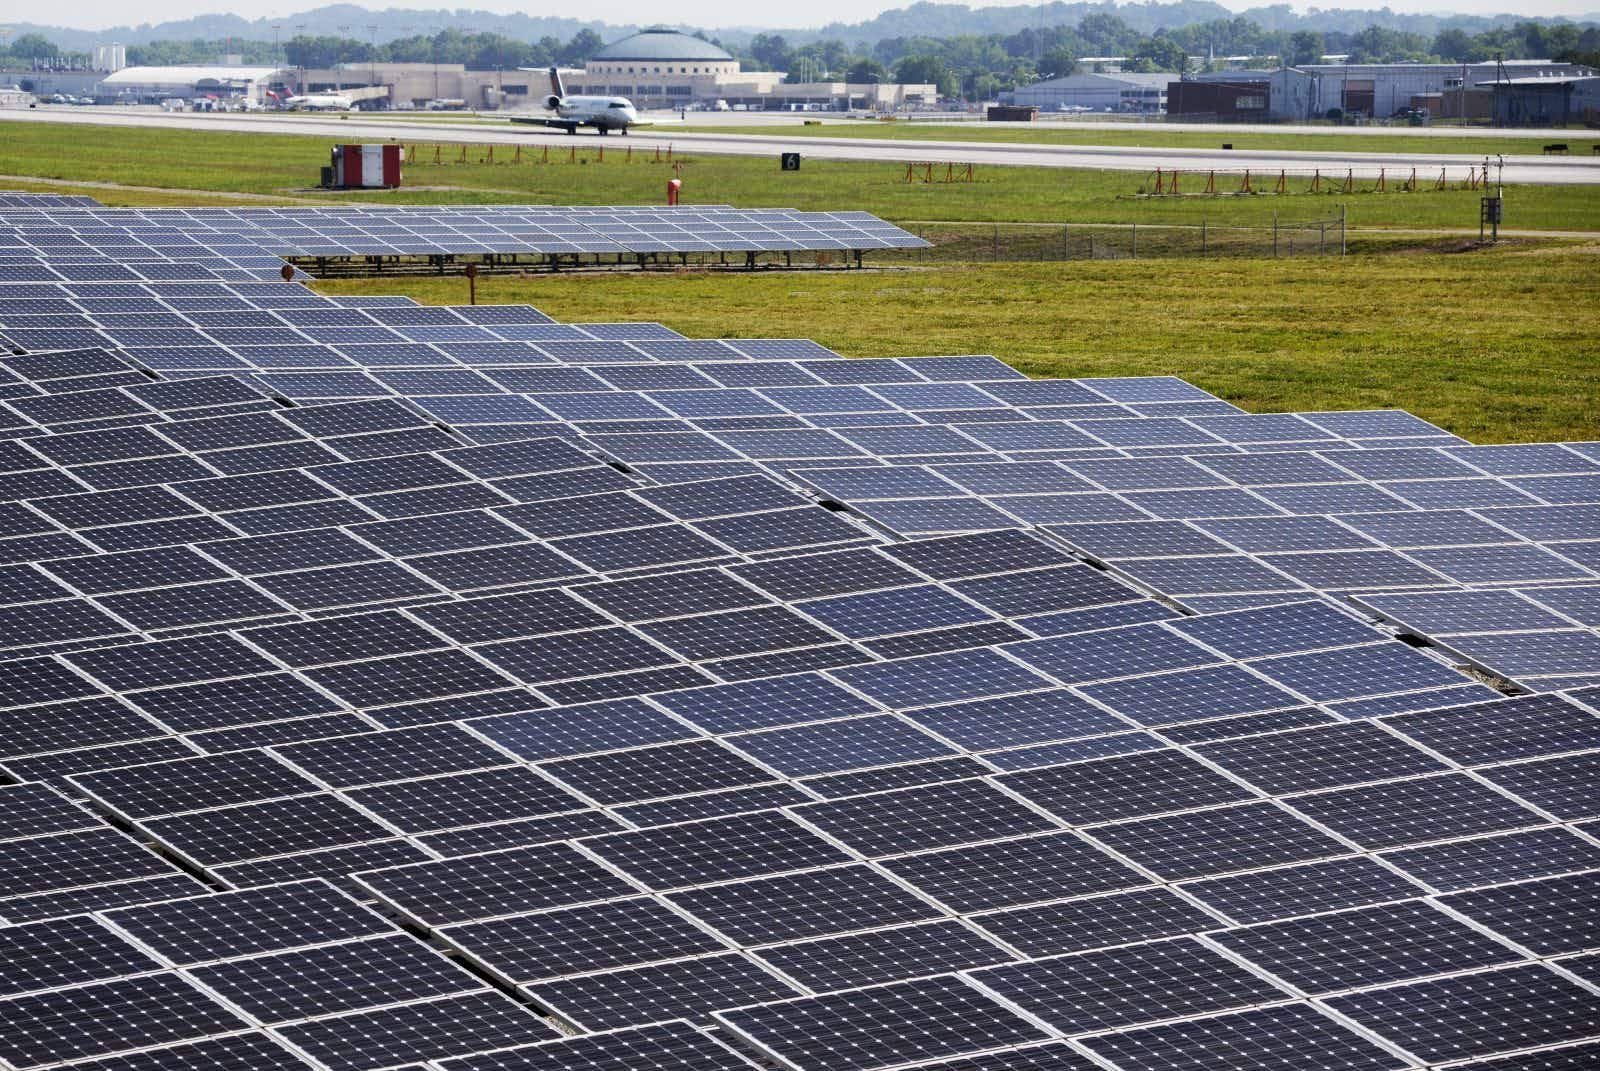 This is the first airport in the US to operate fully on renewable energy